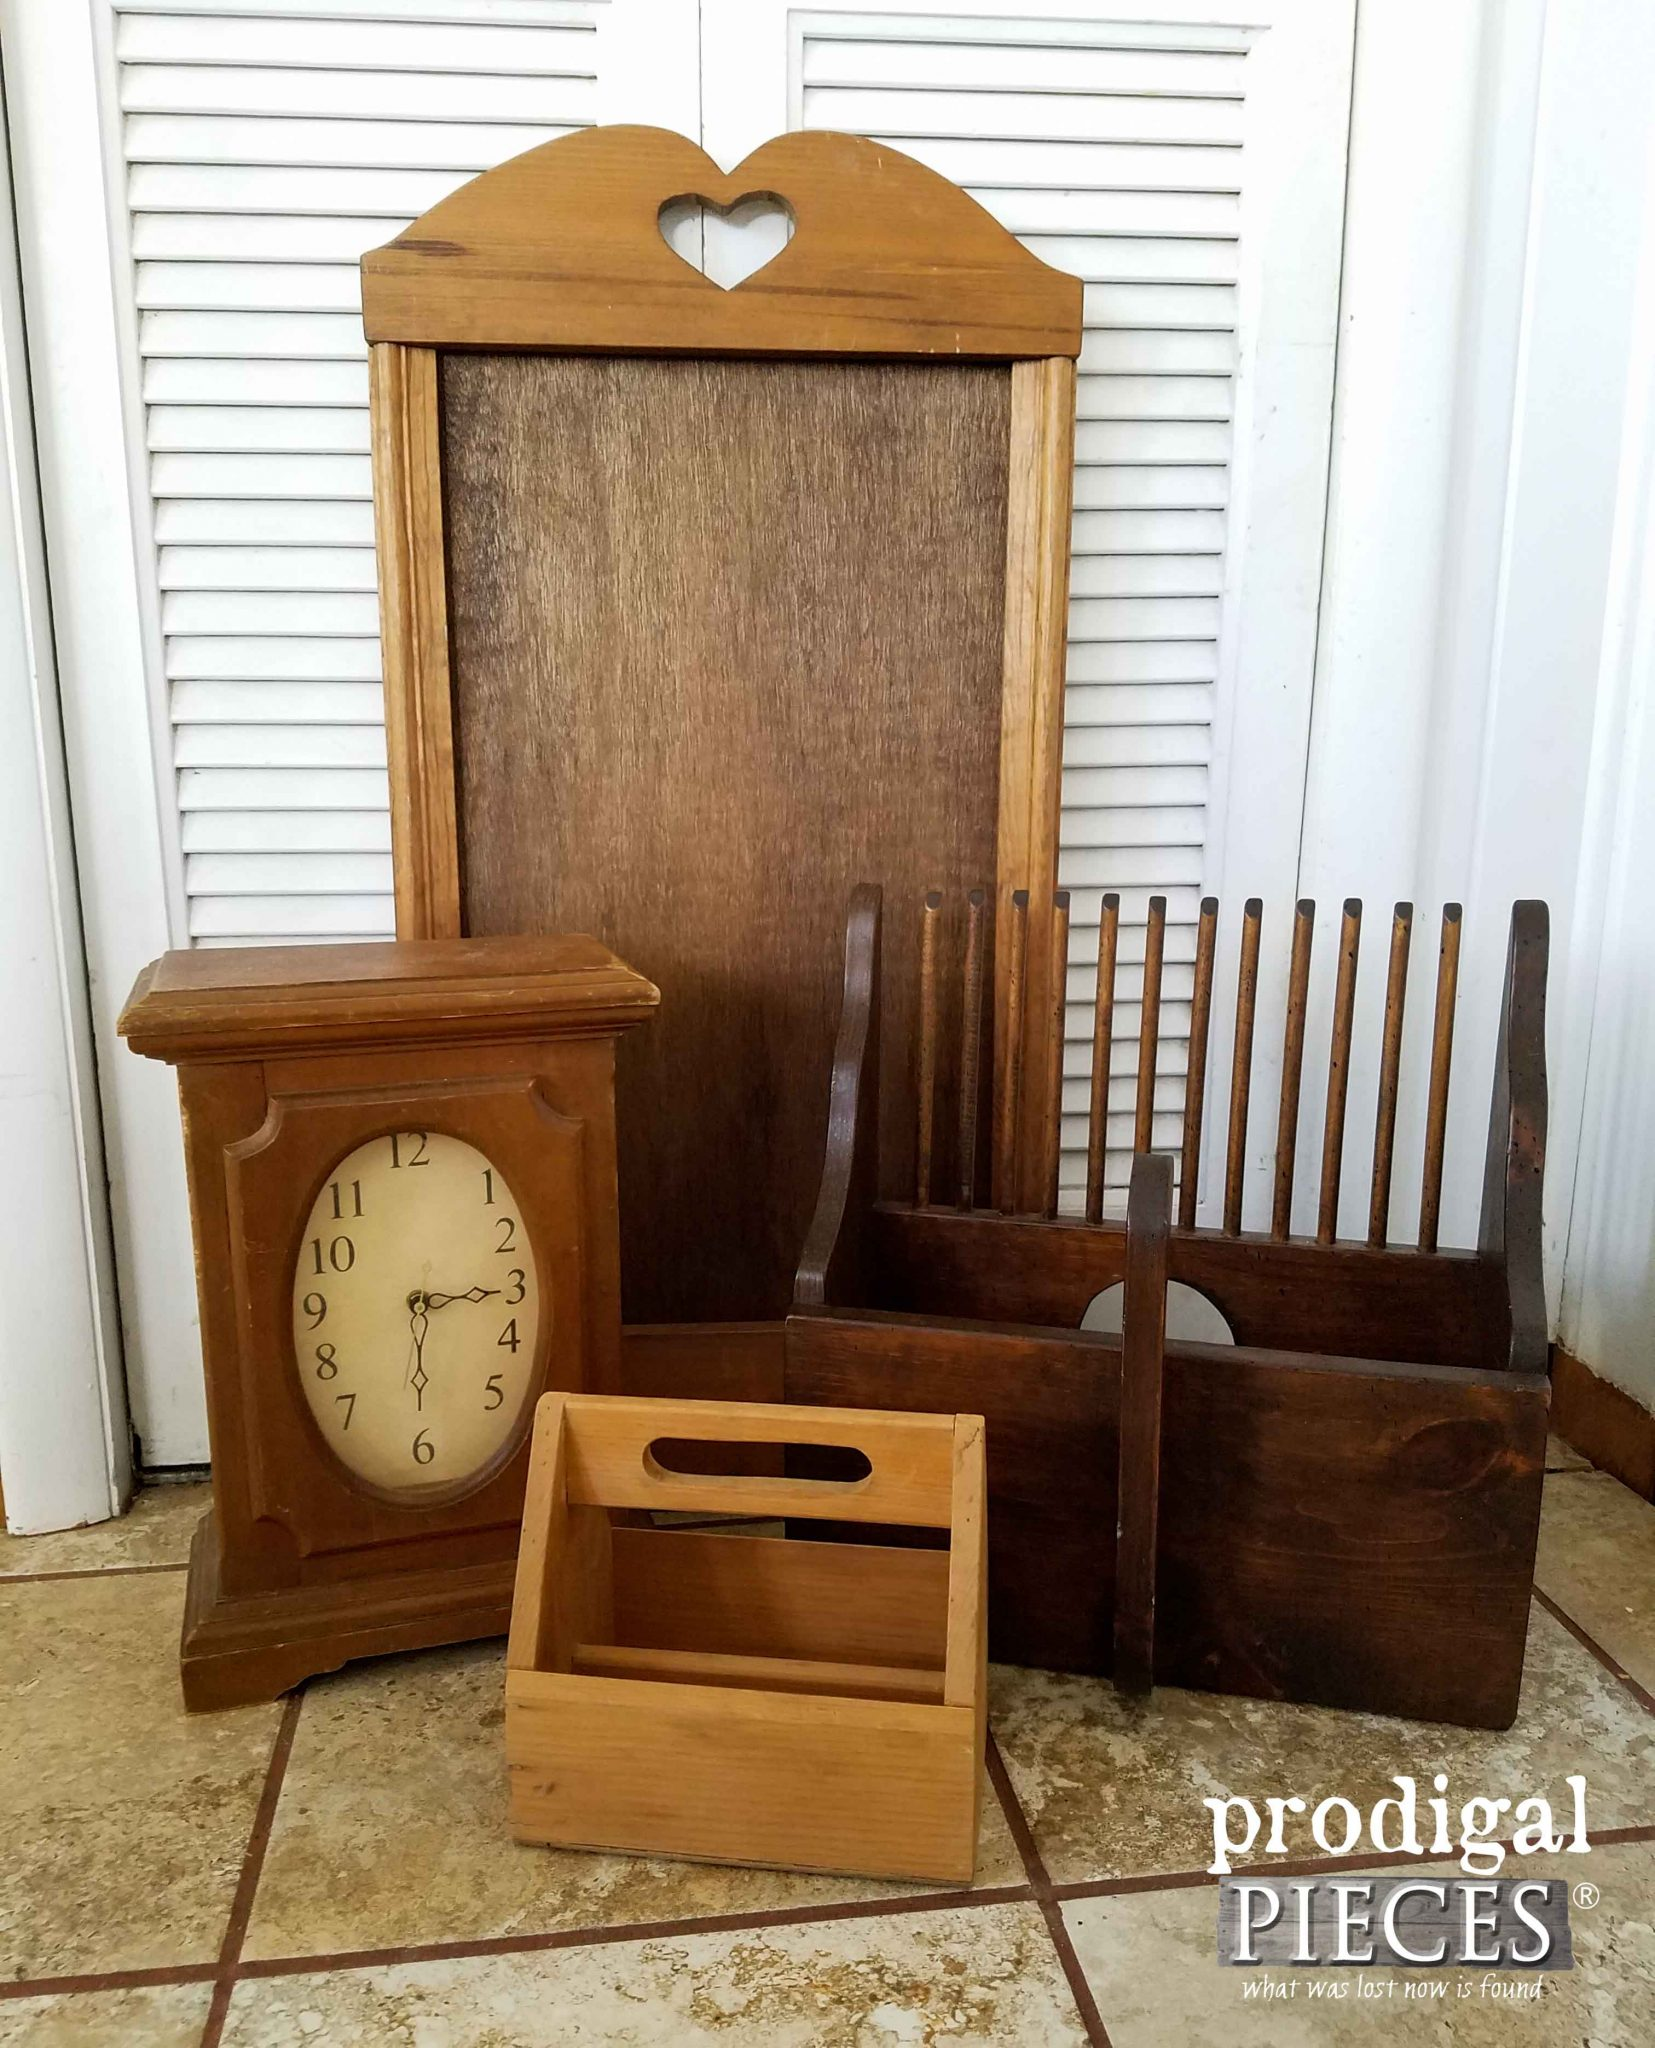 Assortments of Thrift Store Finds | Prodigal Pieces | prodigalpieces.com